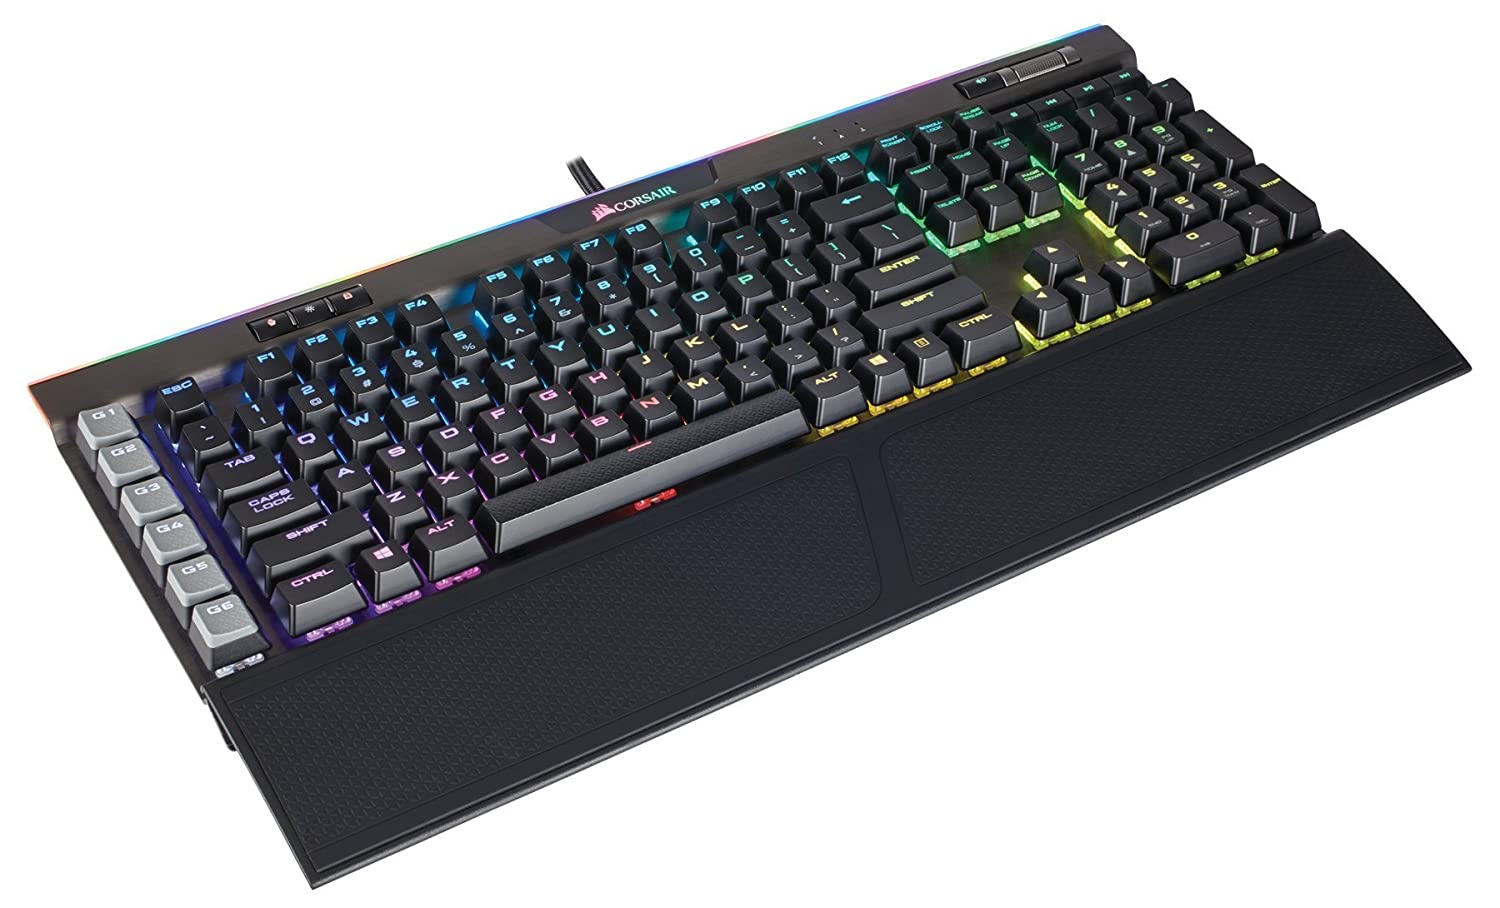 Amazon mechanical keyboard - Amazon Com Corsair Gaming K95 Rgb Platinum Mechanical Keyboard Cherry Mx Speed Gunmetal Ch 9127114 Na Computers Accessories